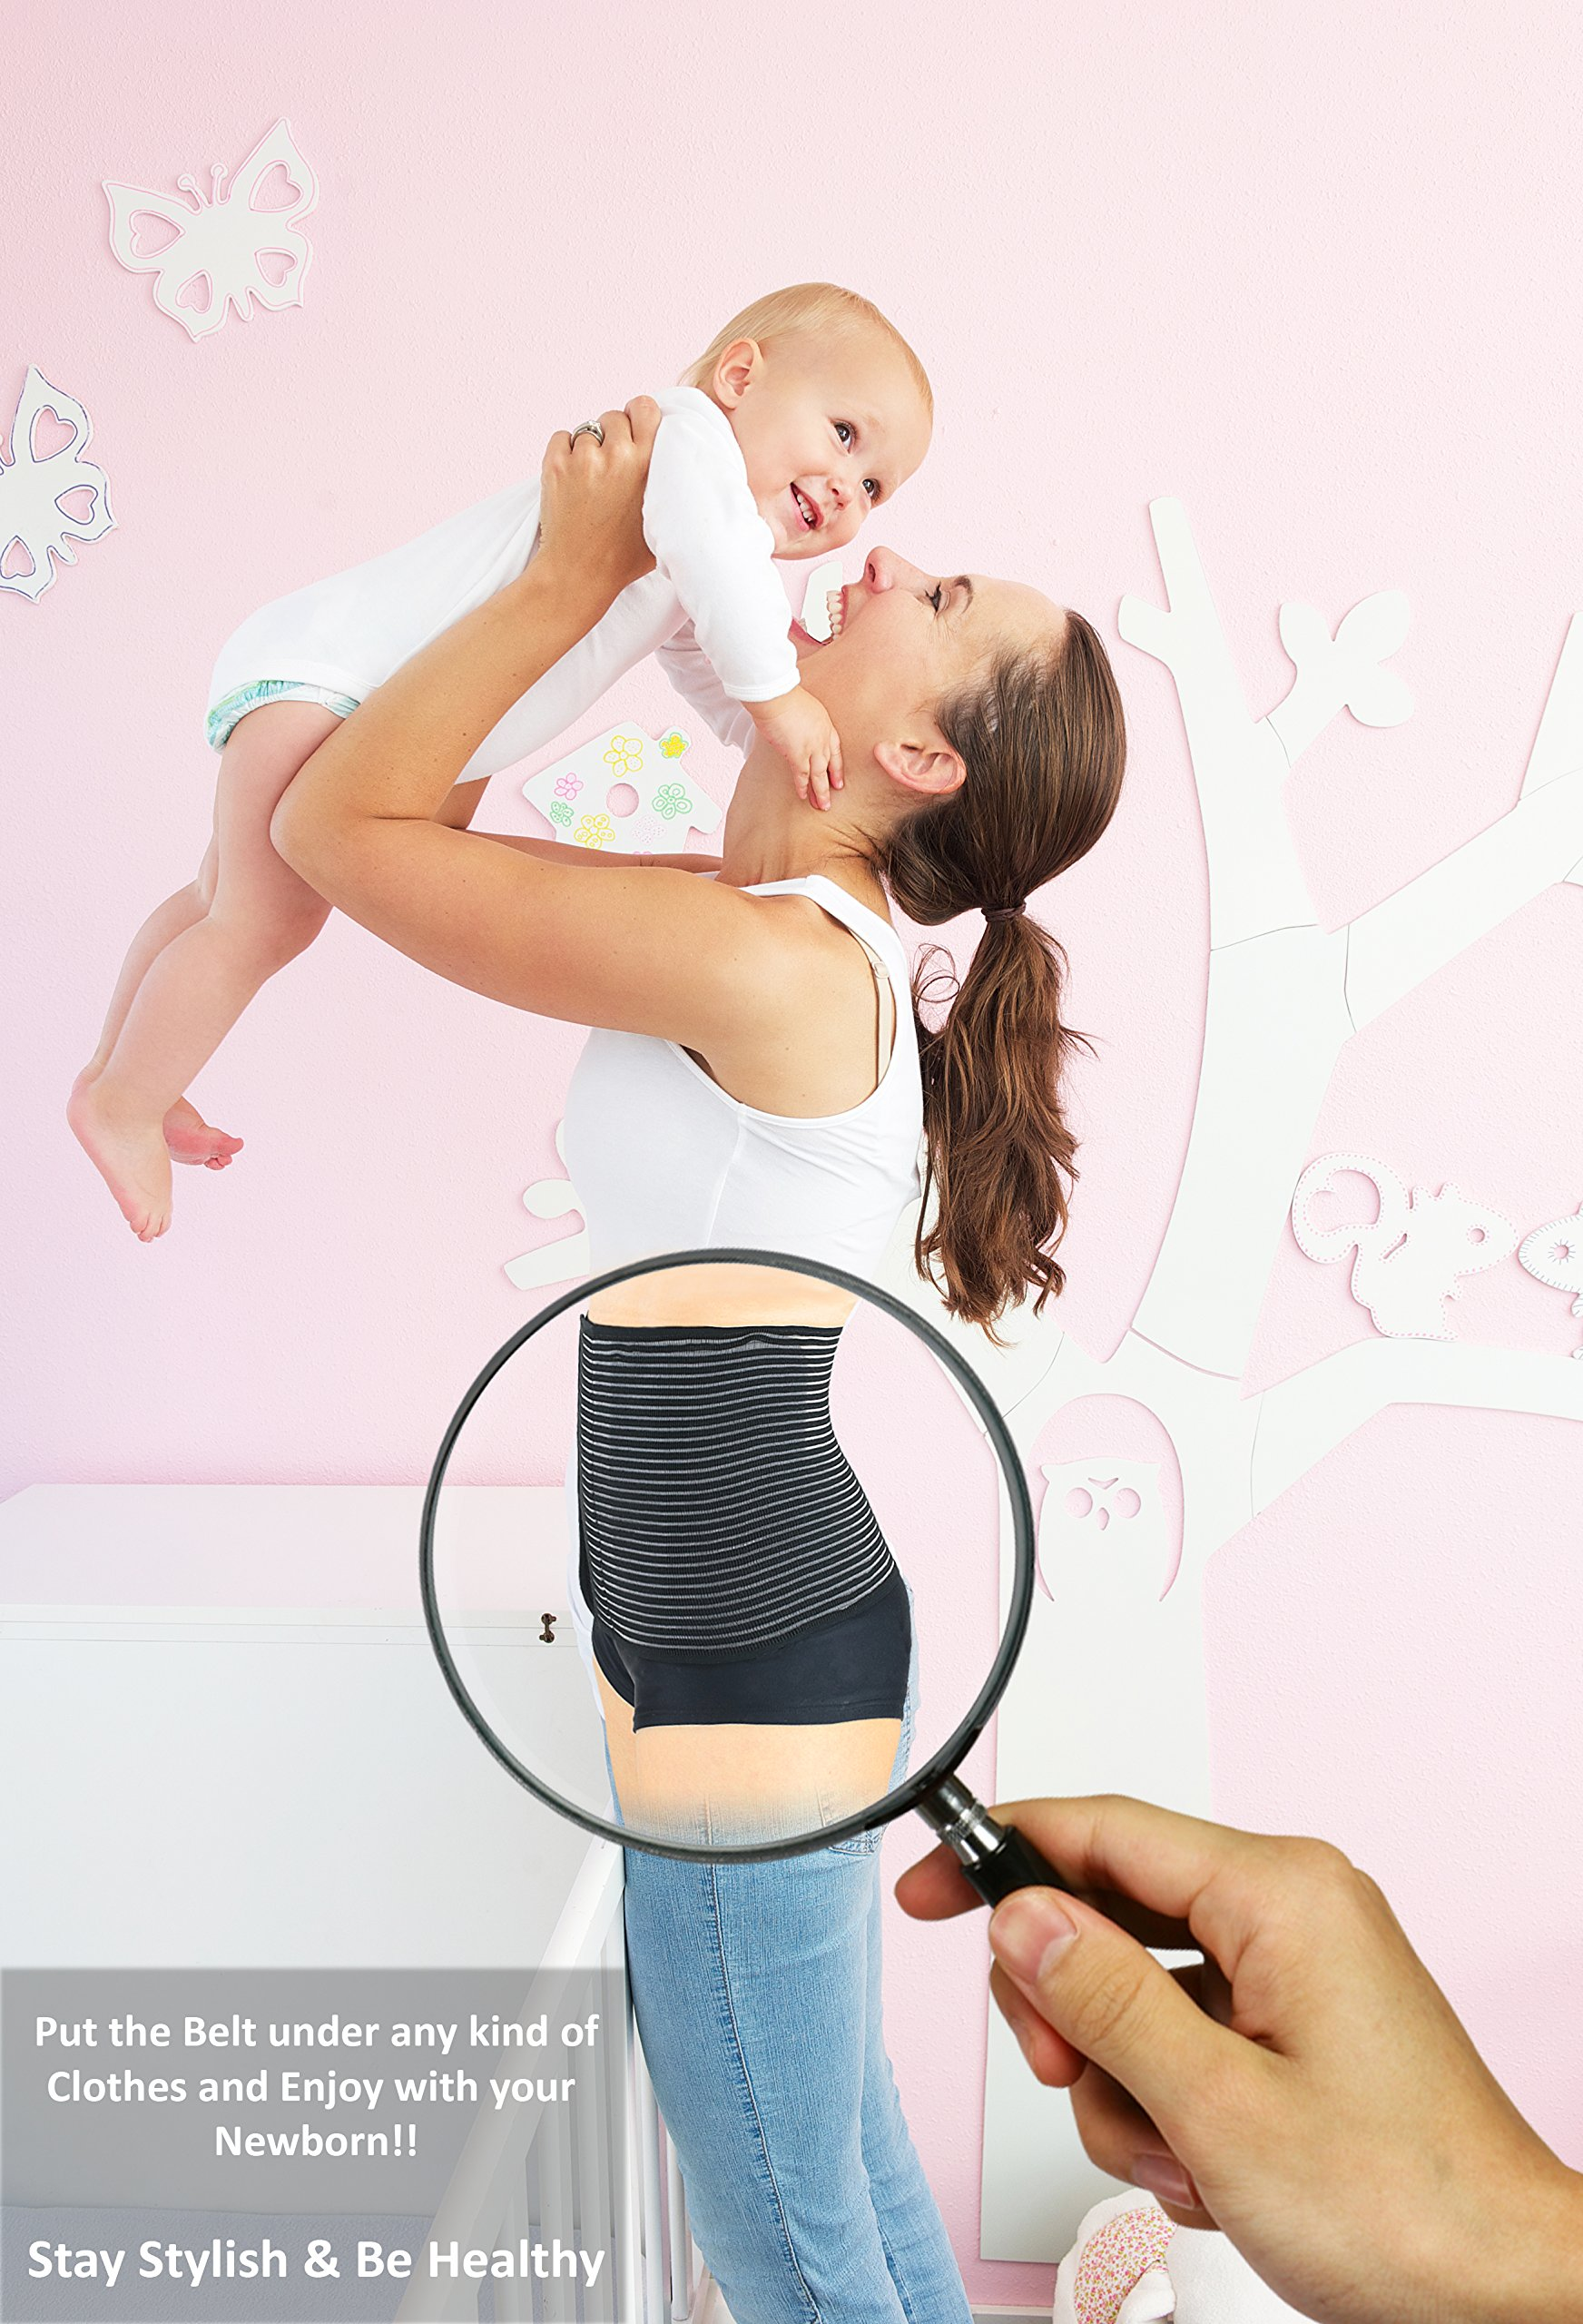 Luxe-Phillips Hospital Grade Postpartum Belly Wrap with Breathable Technology. Active Compression Quickly Reduces The Size of The Uterus Post Pregnancy for Faster Slimming Results. (Large) by Luxe-Phillips (Image #2)